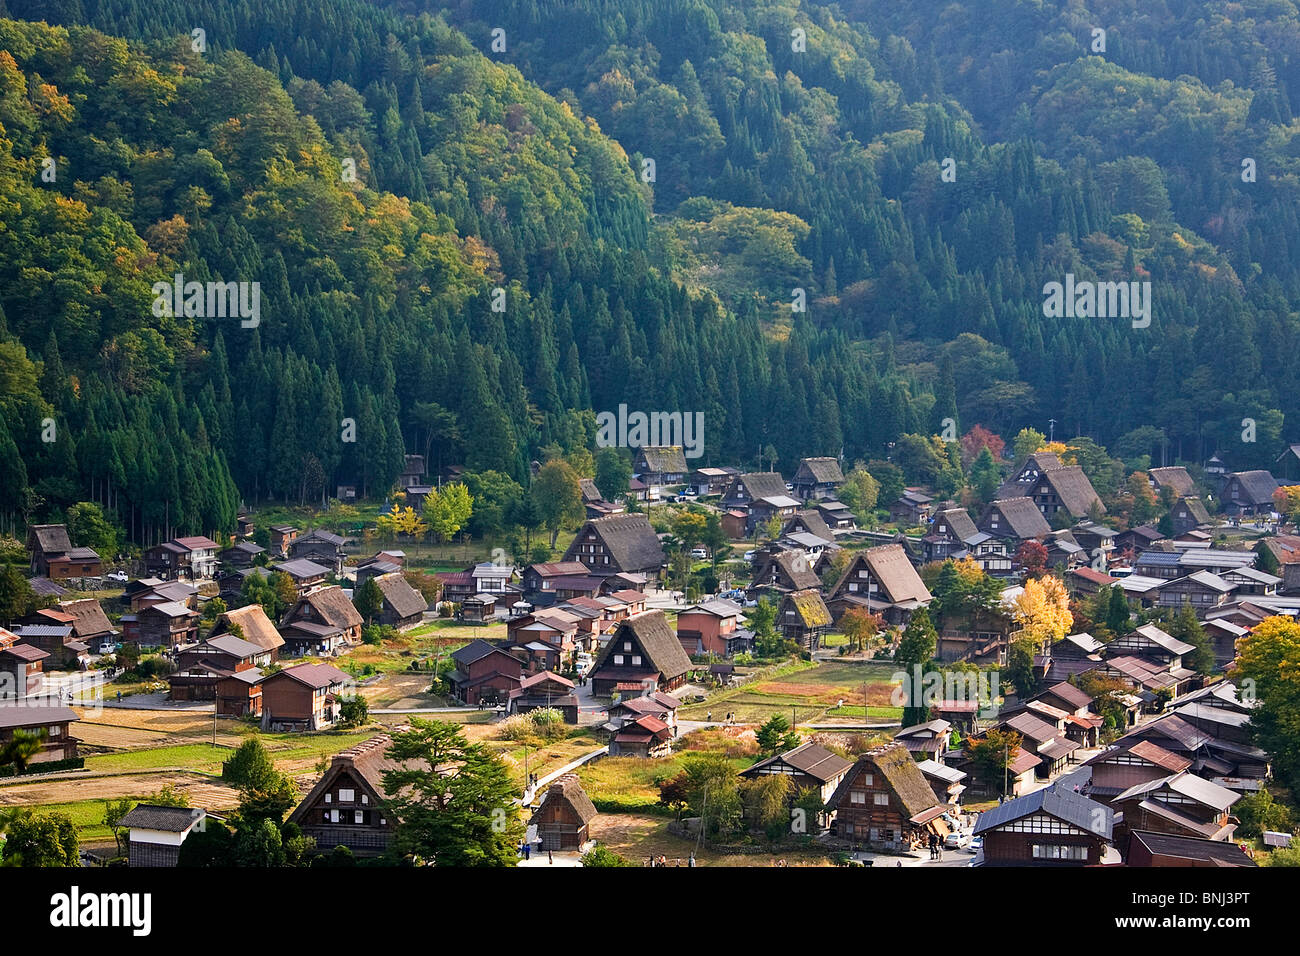 Japan Asia Shirakawa Go city straw roof thatched roof houses homes UNESCO world cultural heritage straw roof village, - Stock Image